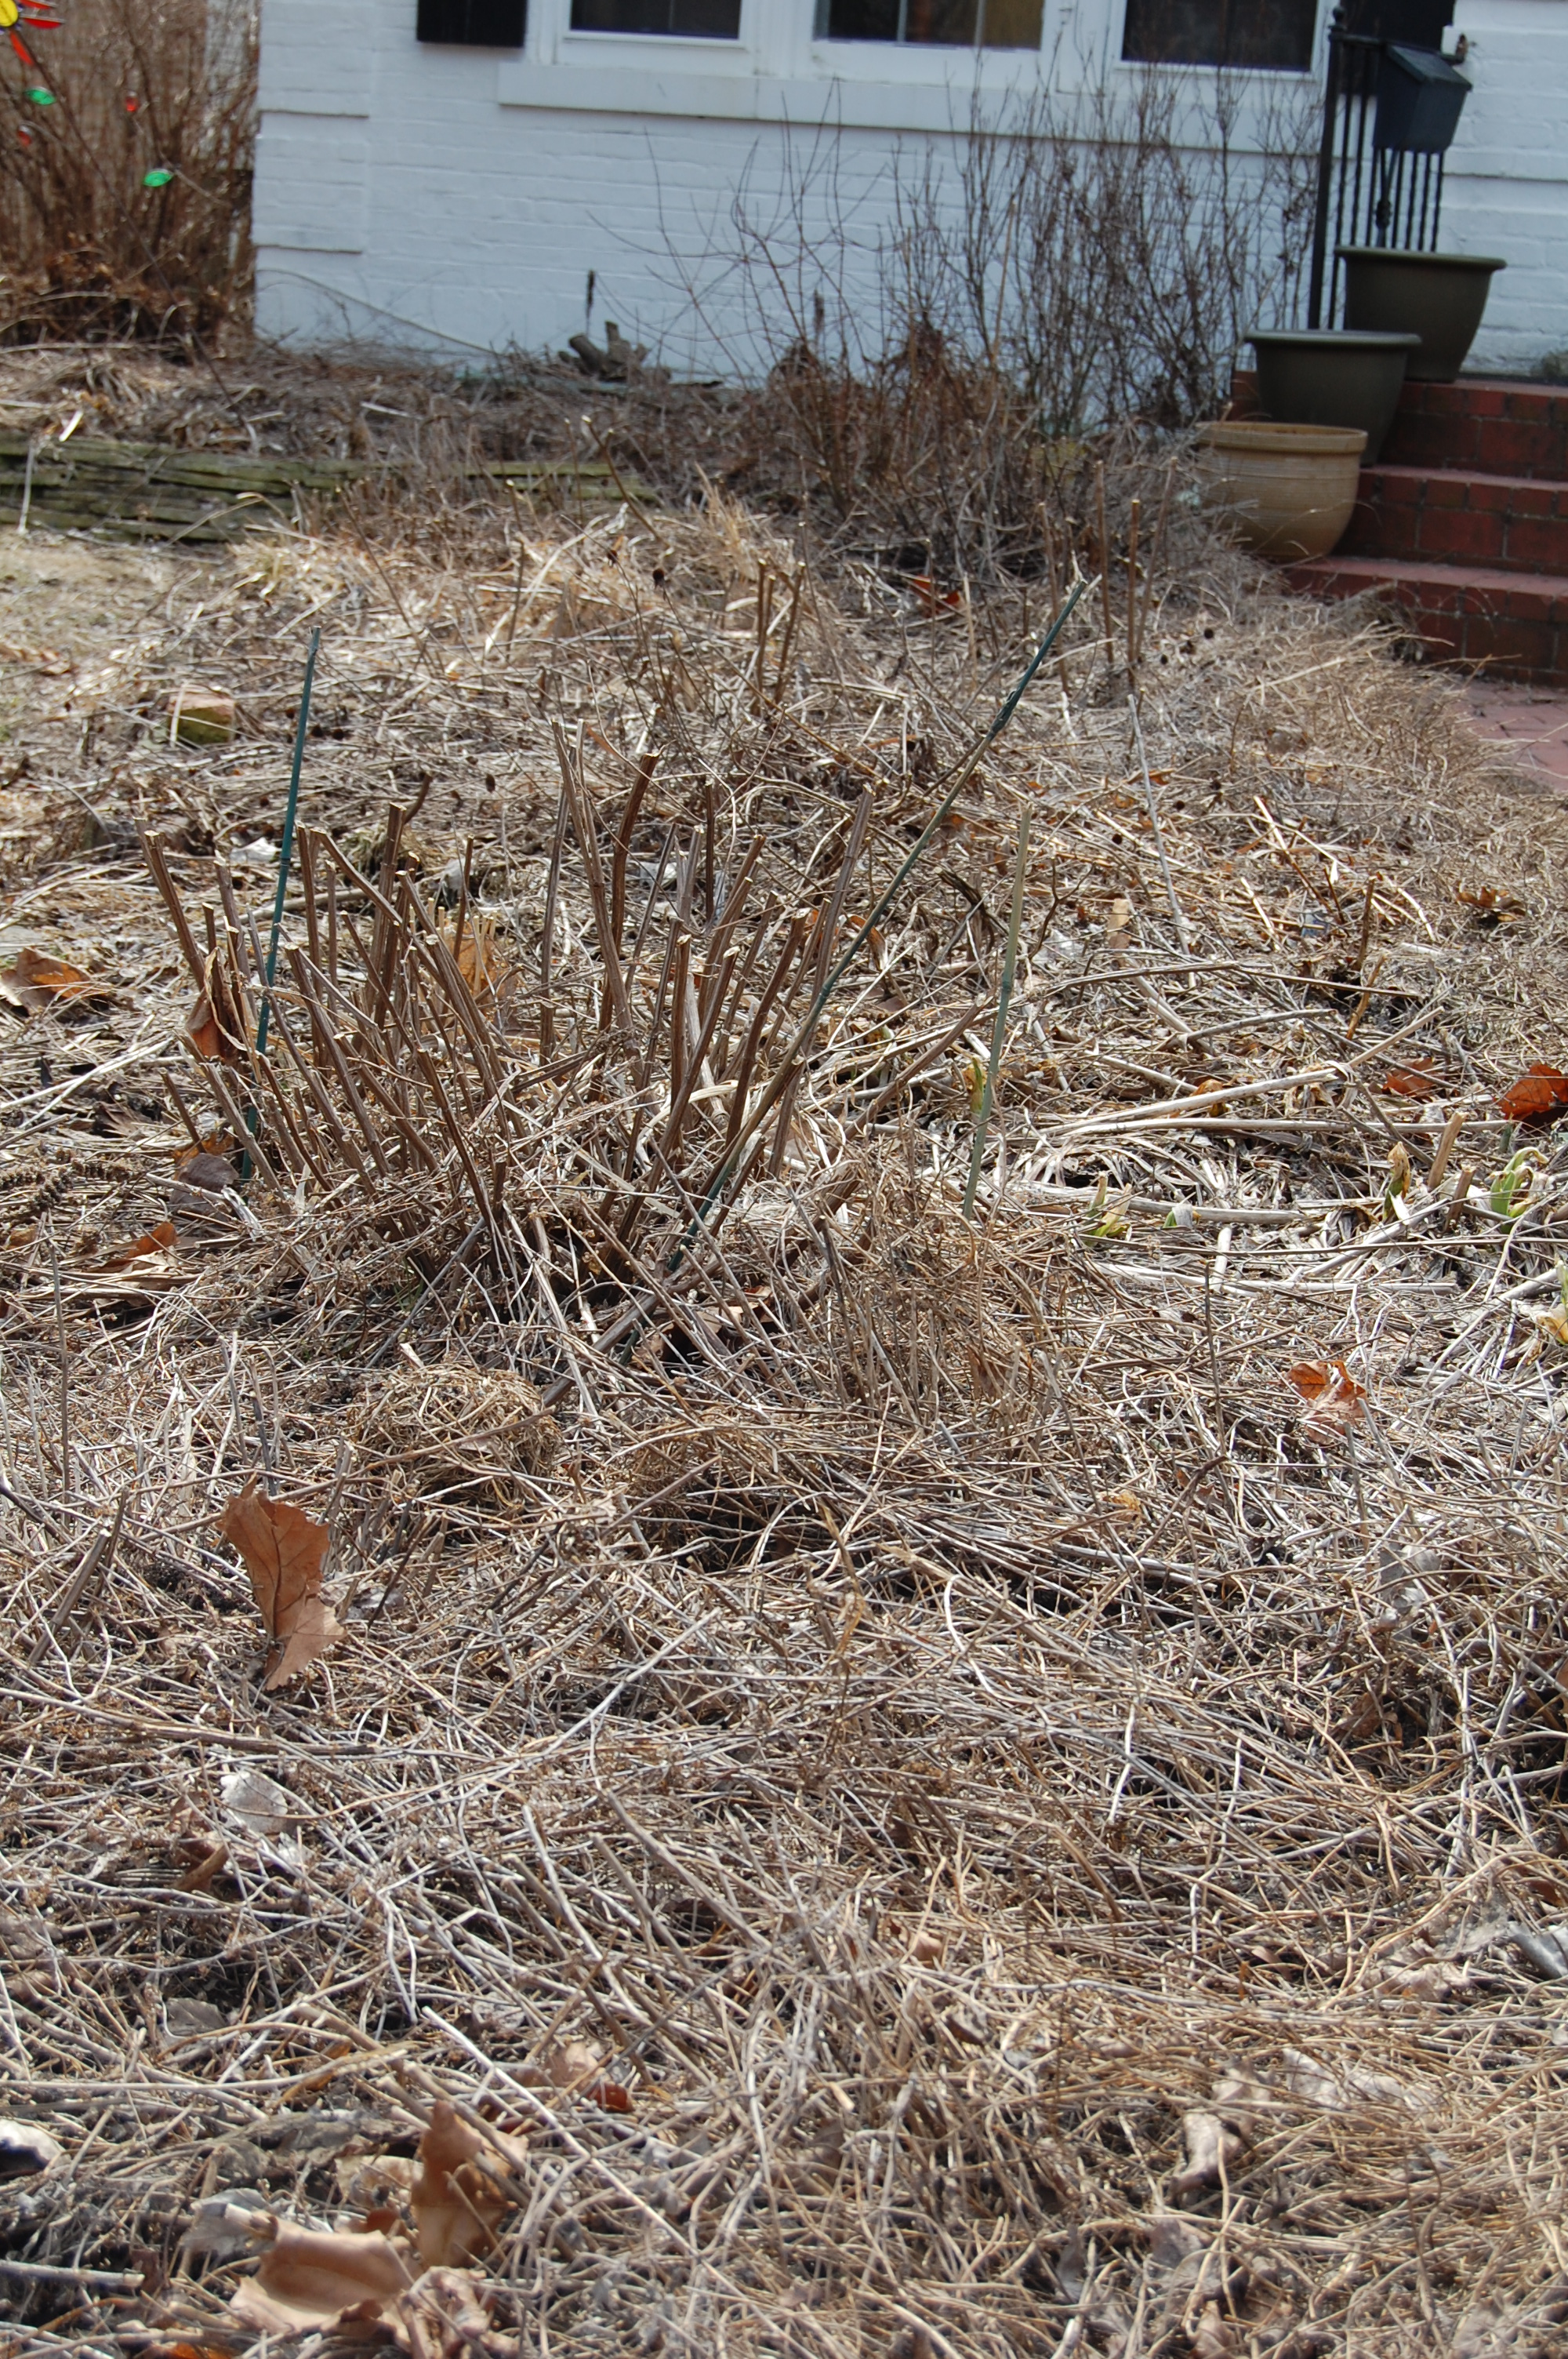 The Fuzzy Wuzzy Garden, or I Admit I Was Wrong About Spring Clean-Up